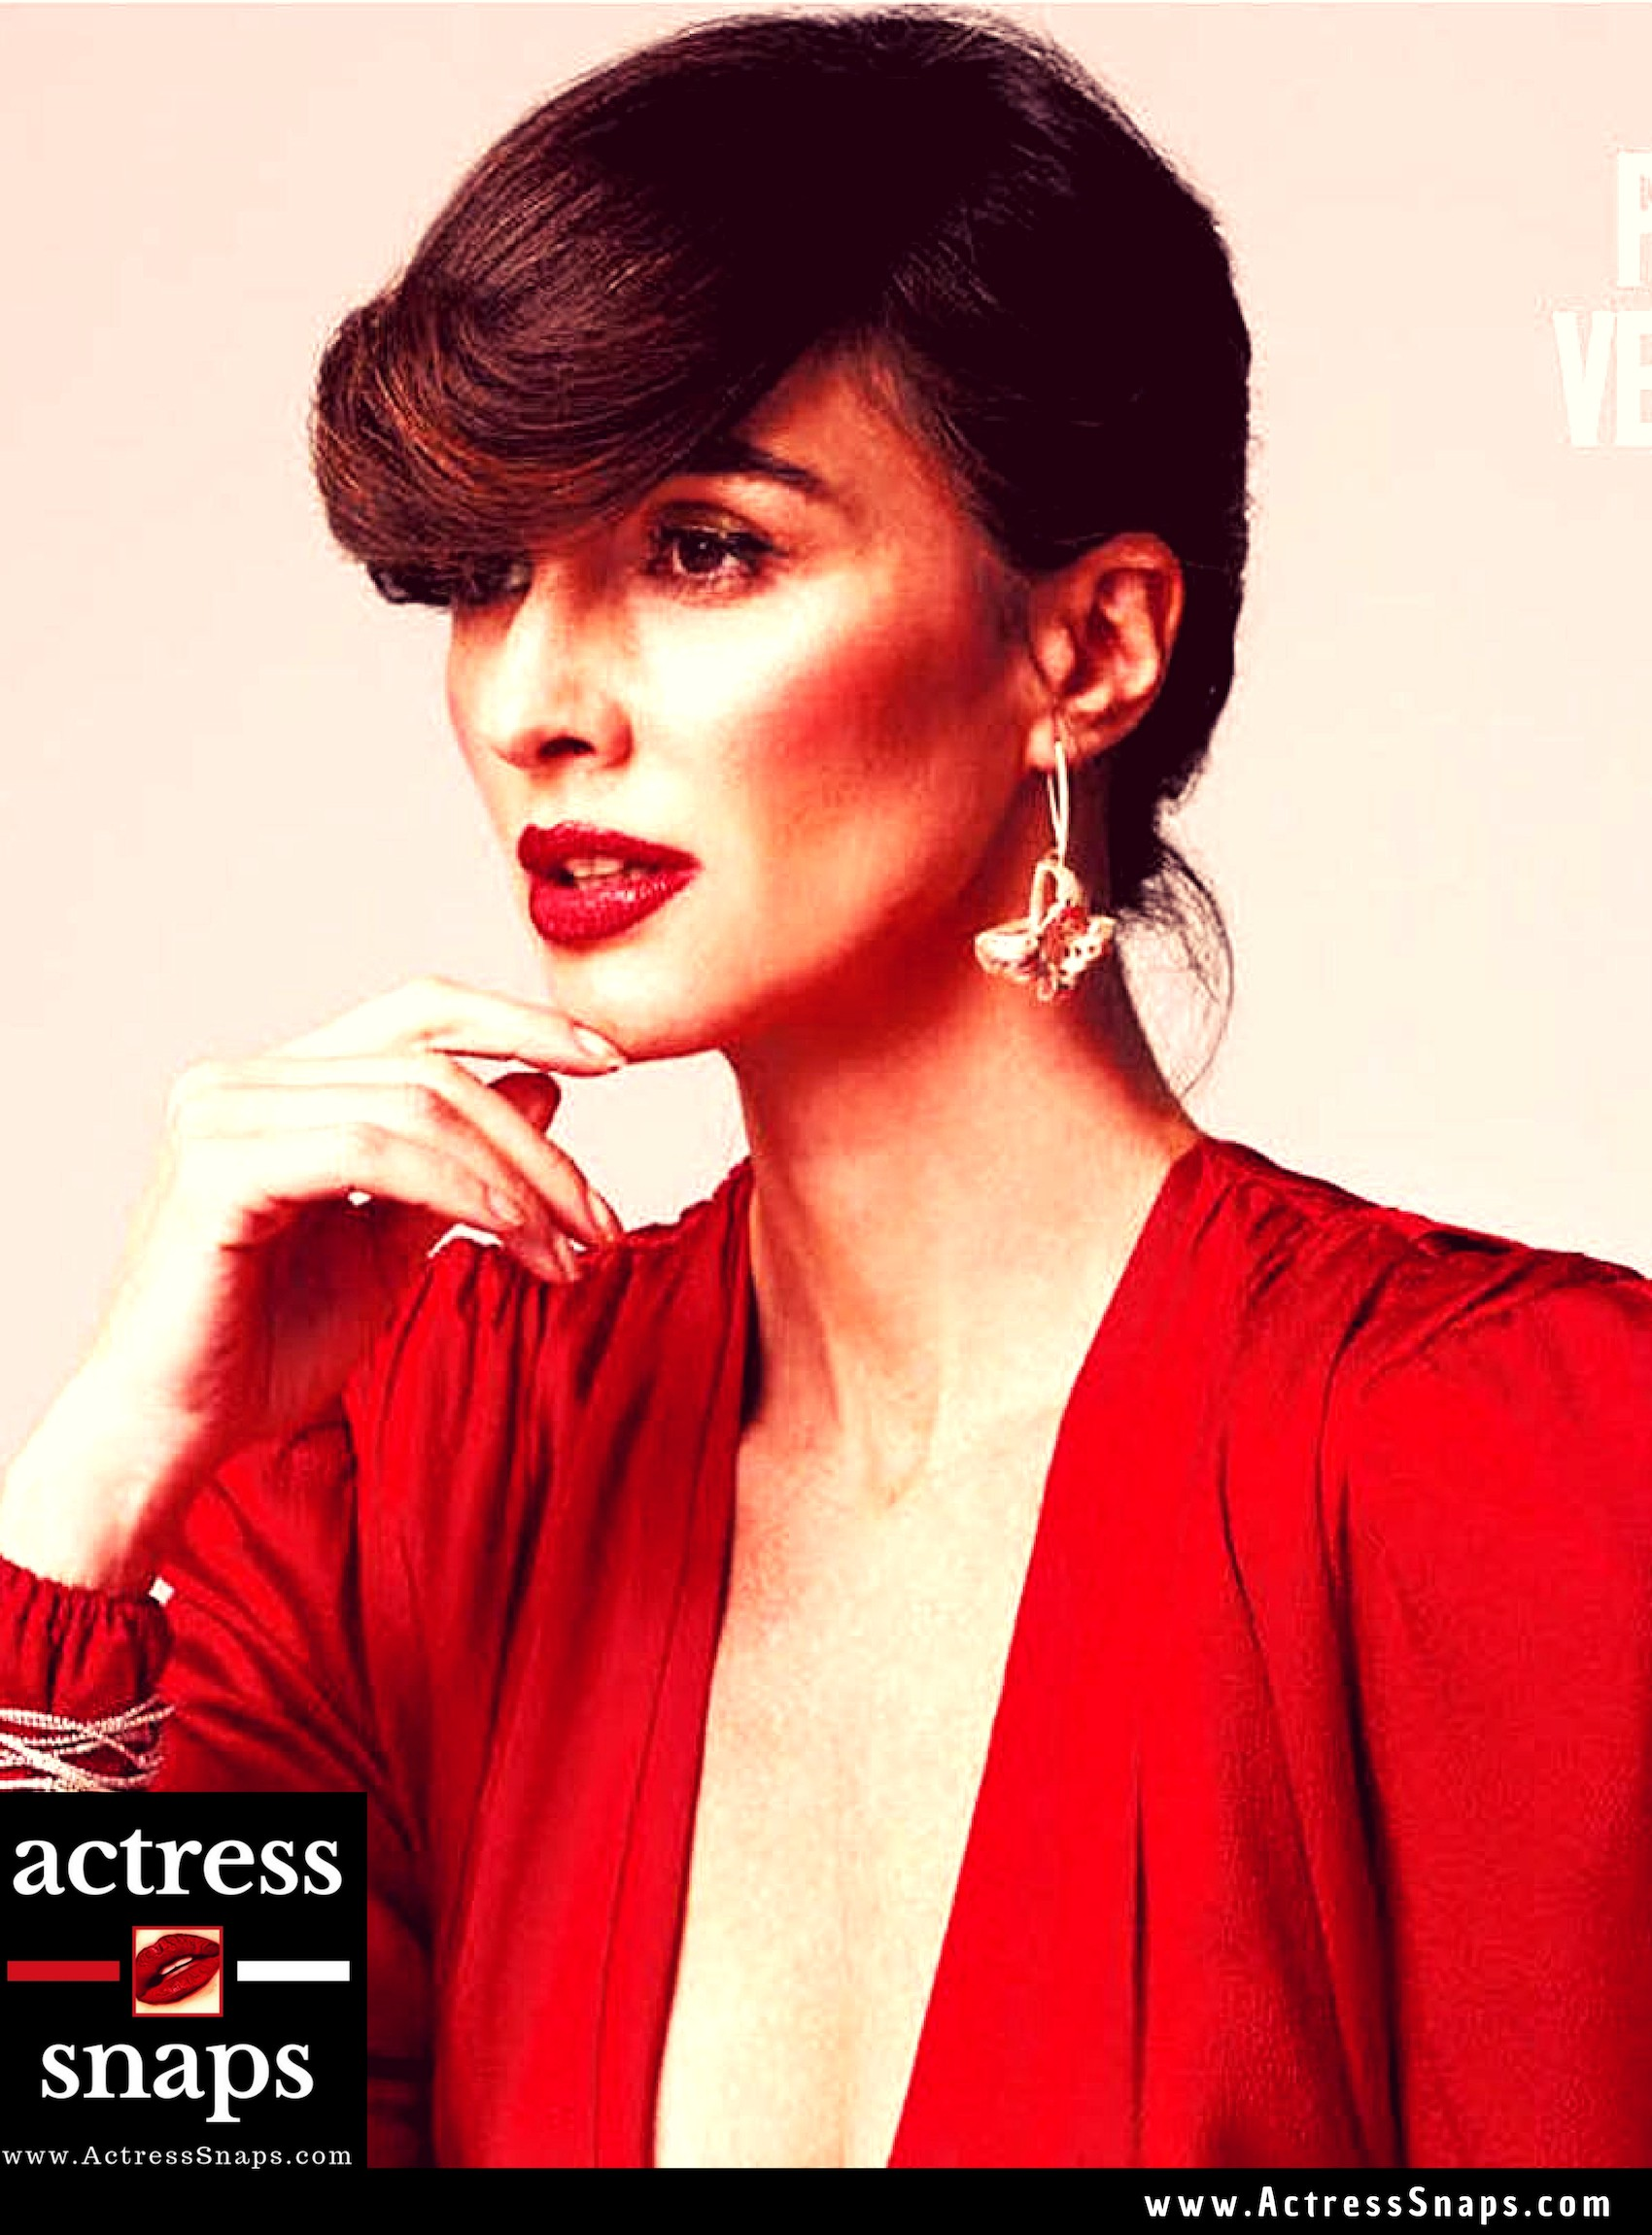 Paz Vega wishing Fans a merry Christmas with this Photo post #VanessaHudgens